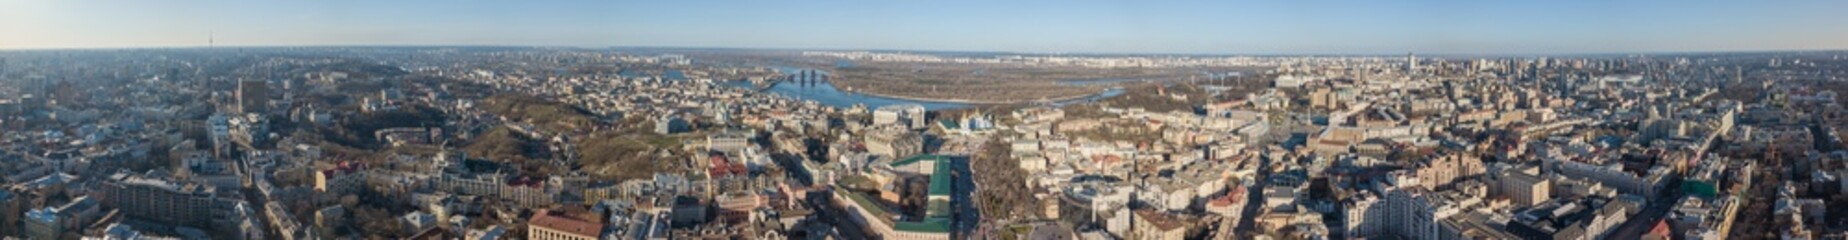 Foto op Canvas Panorama of the city of Kiev with the Dnieper river against the blue sky, Ukraine